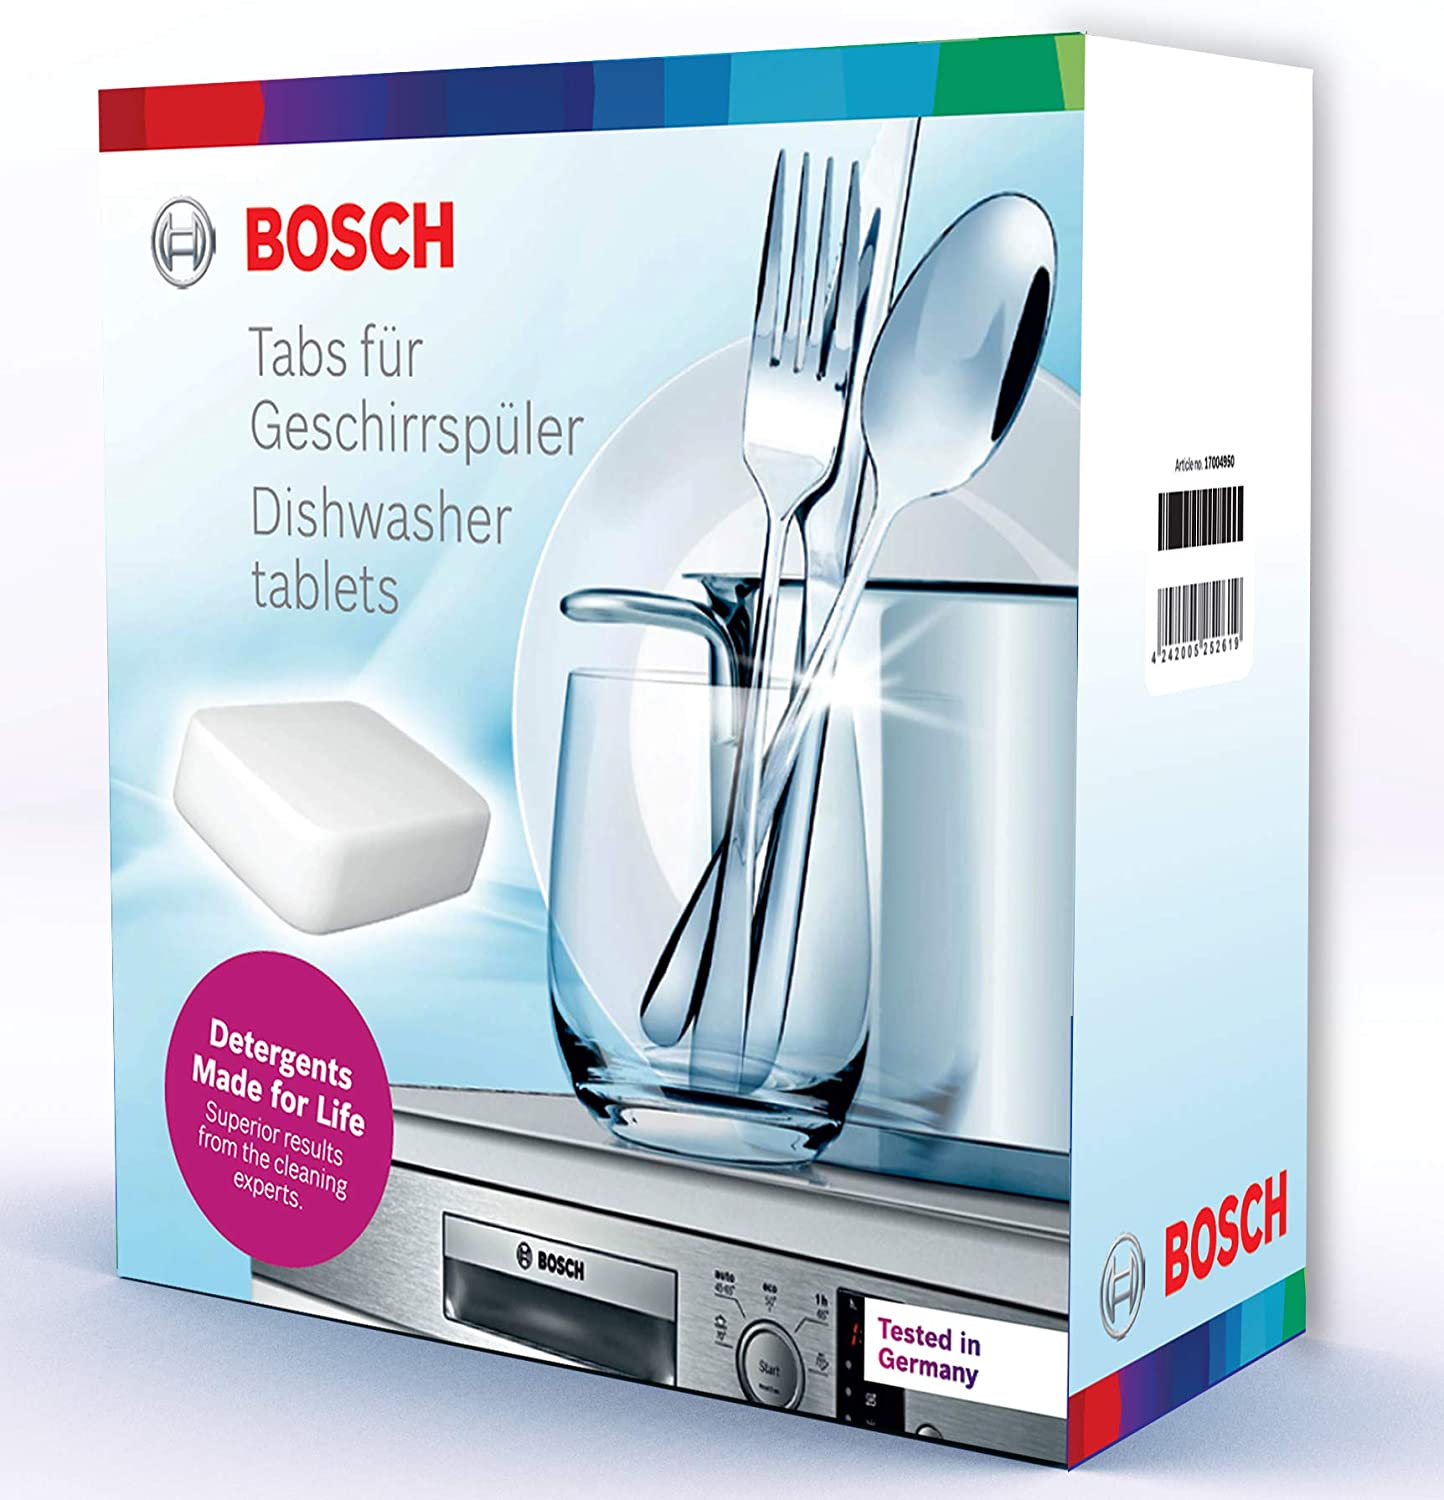 Bosch Dishwasher Tablets ( 25 Tablets): Amazon.in: Health & Personal Care